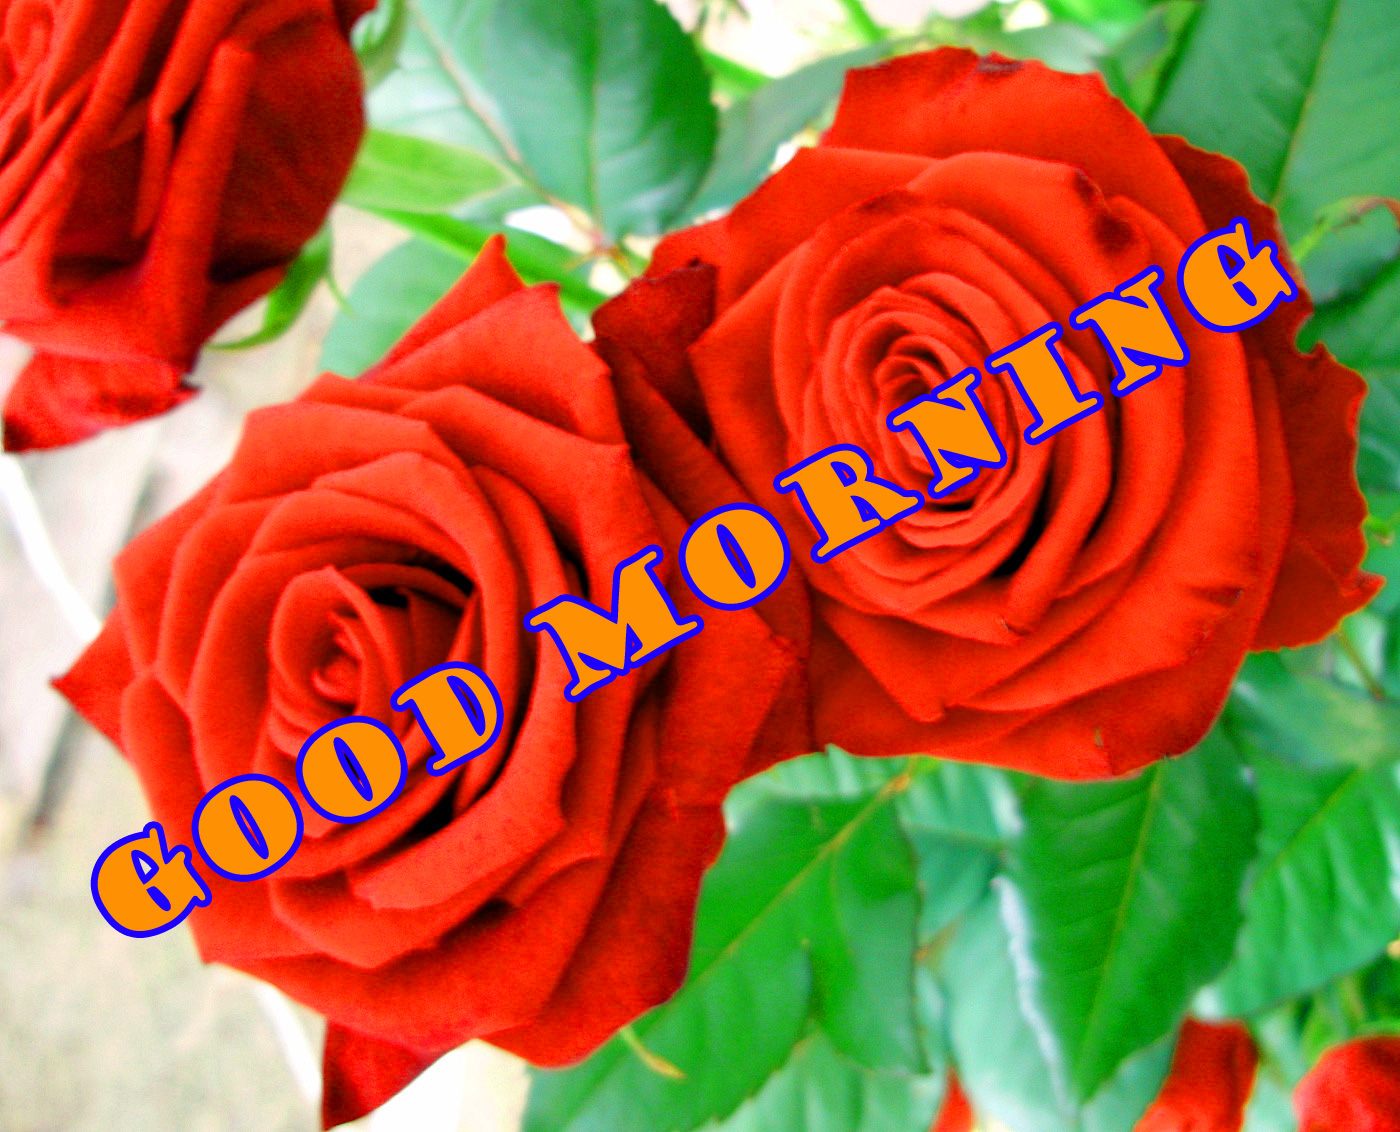 Good Morning Red Rose Wallpaper Photo Images Free Download